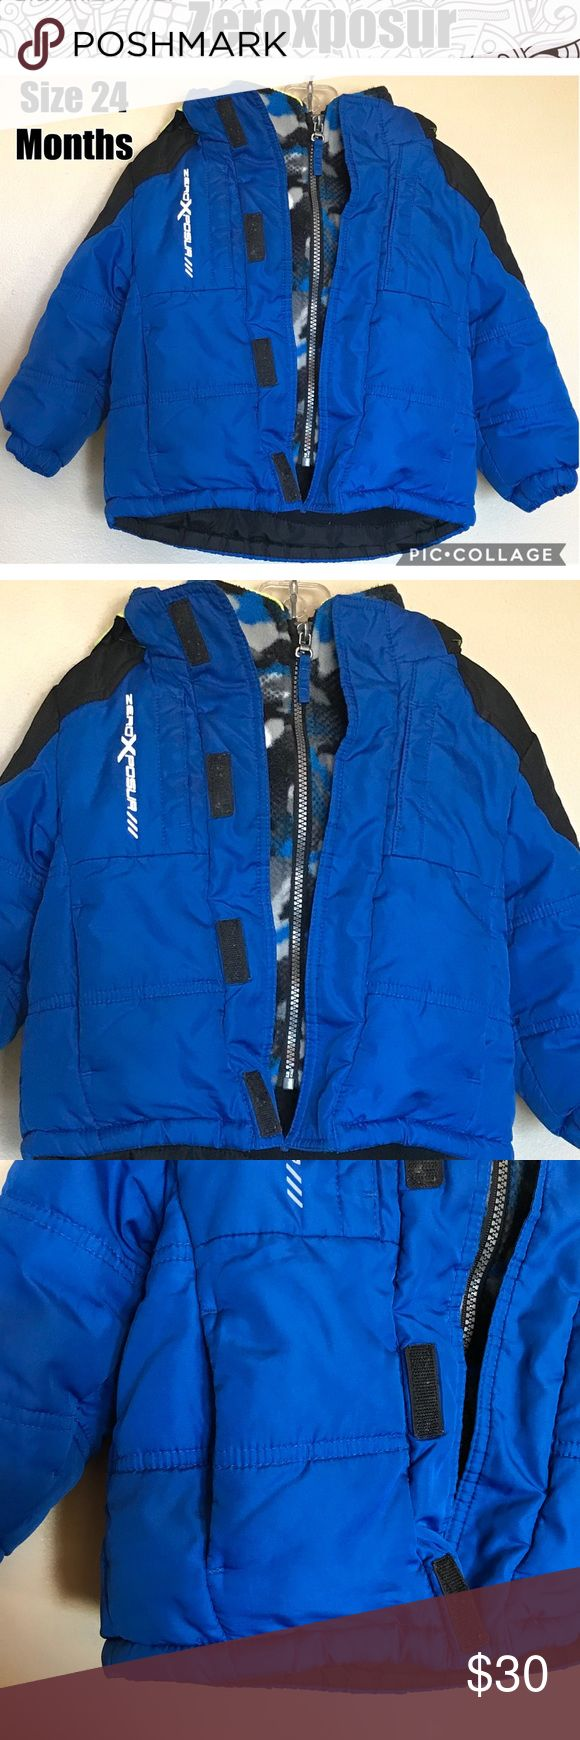 Zeroxposur Boys Winter Coat Size 24 Months One zipper and Velcro close, no separate inside pieces that can be hard at this age. Nice and warm! Hood can be removed. ZeroXposur Jackets & Coats